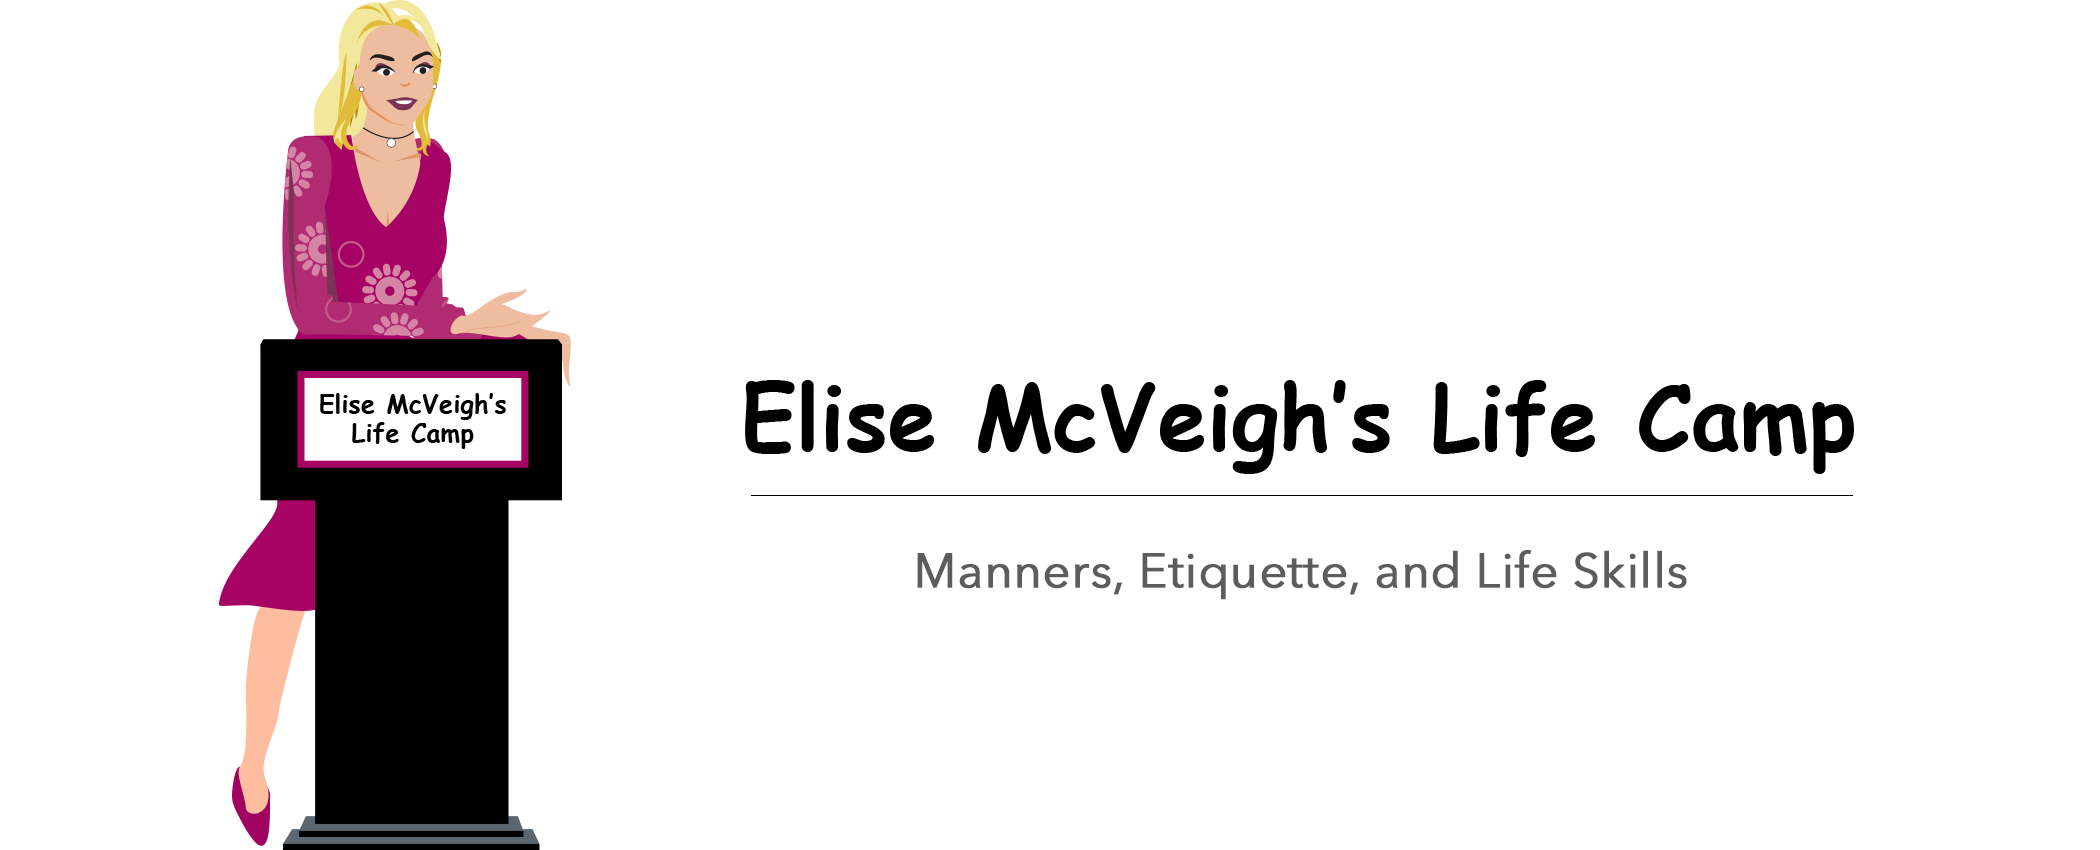 Elise McVeigh's Life Camp